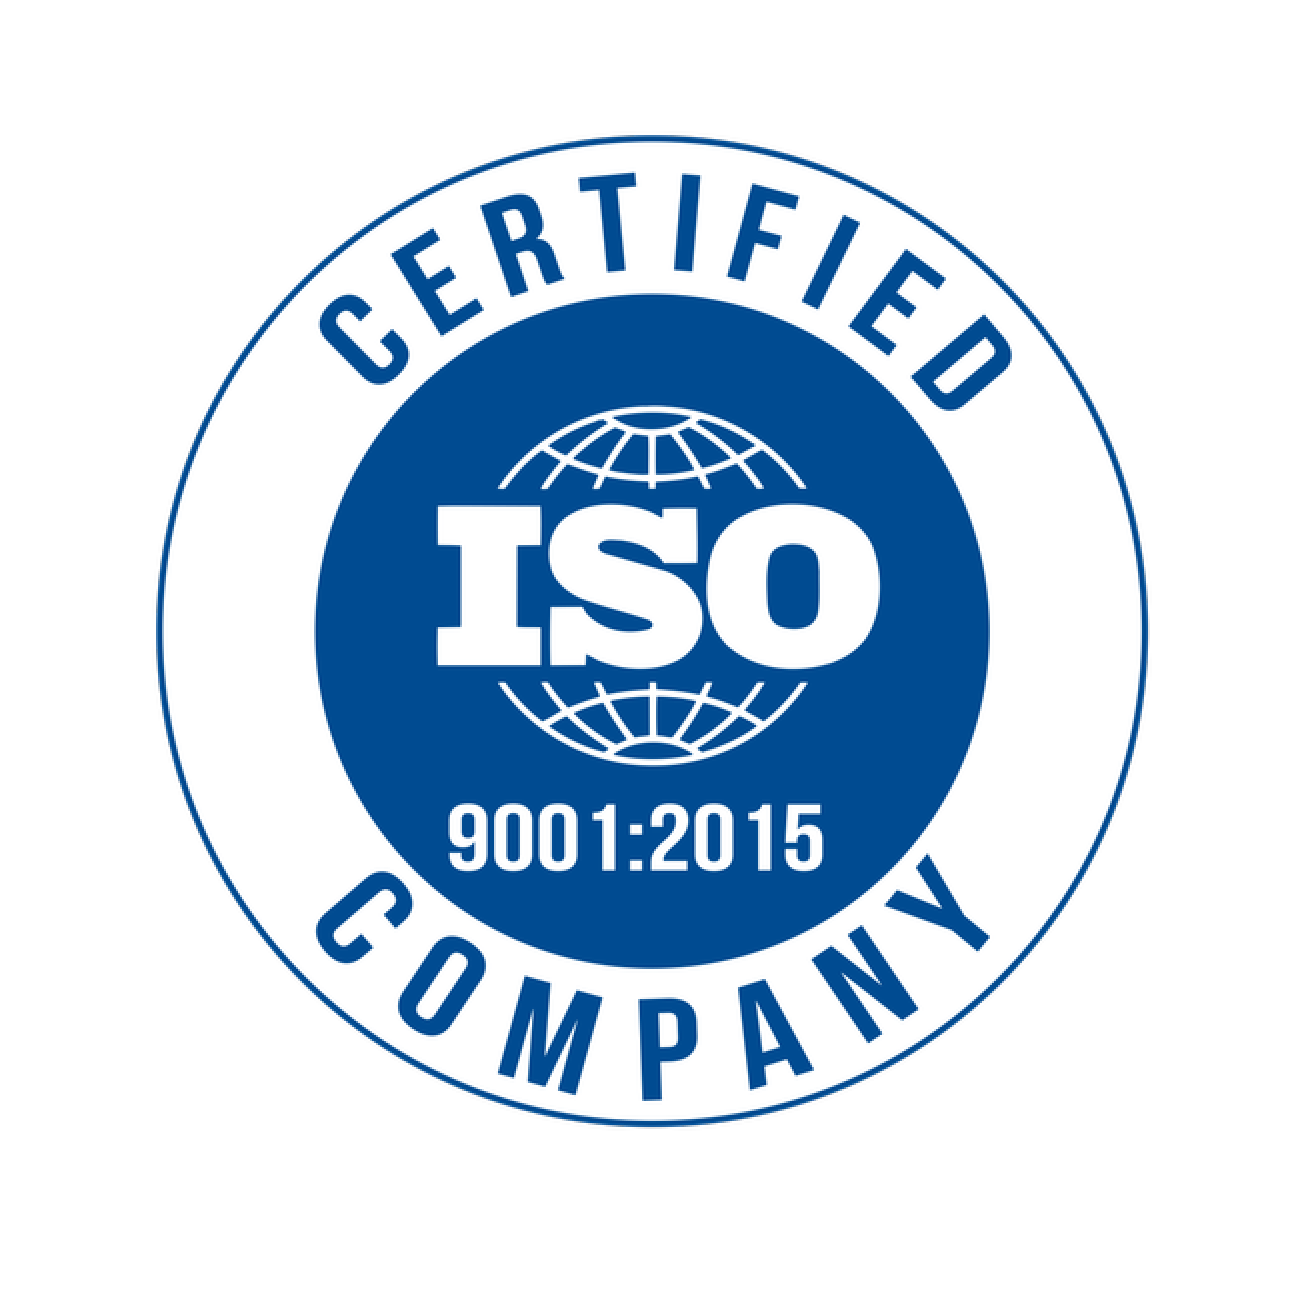 ISO 9001:2015 Certification Logo